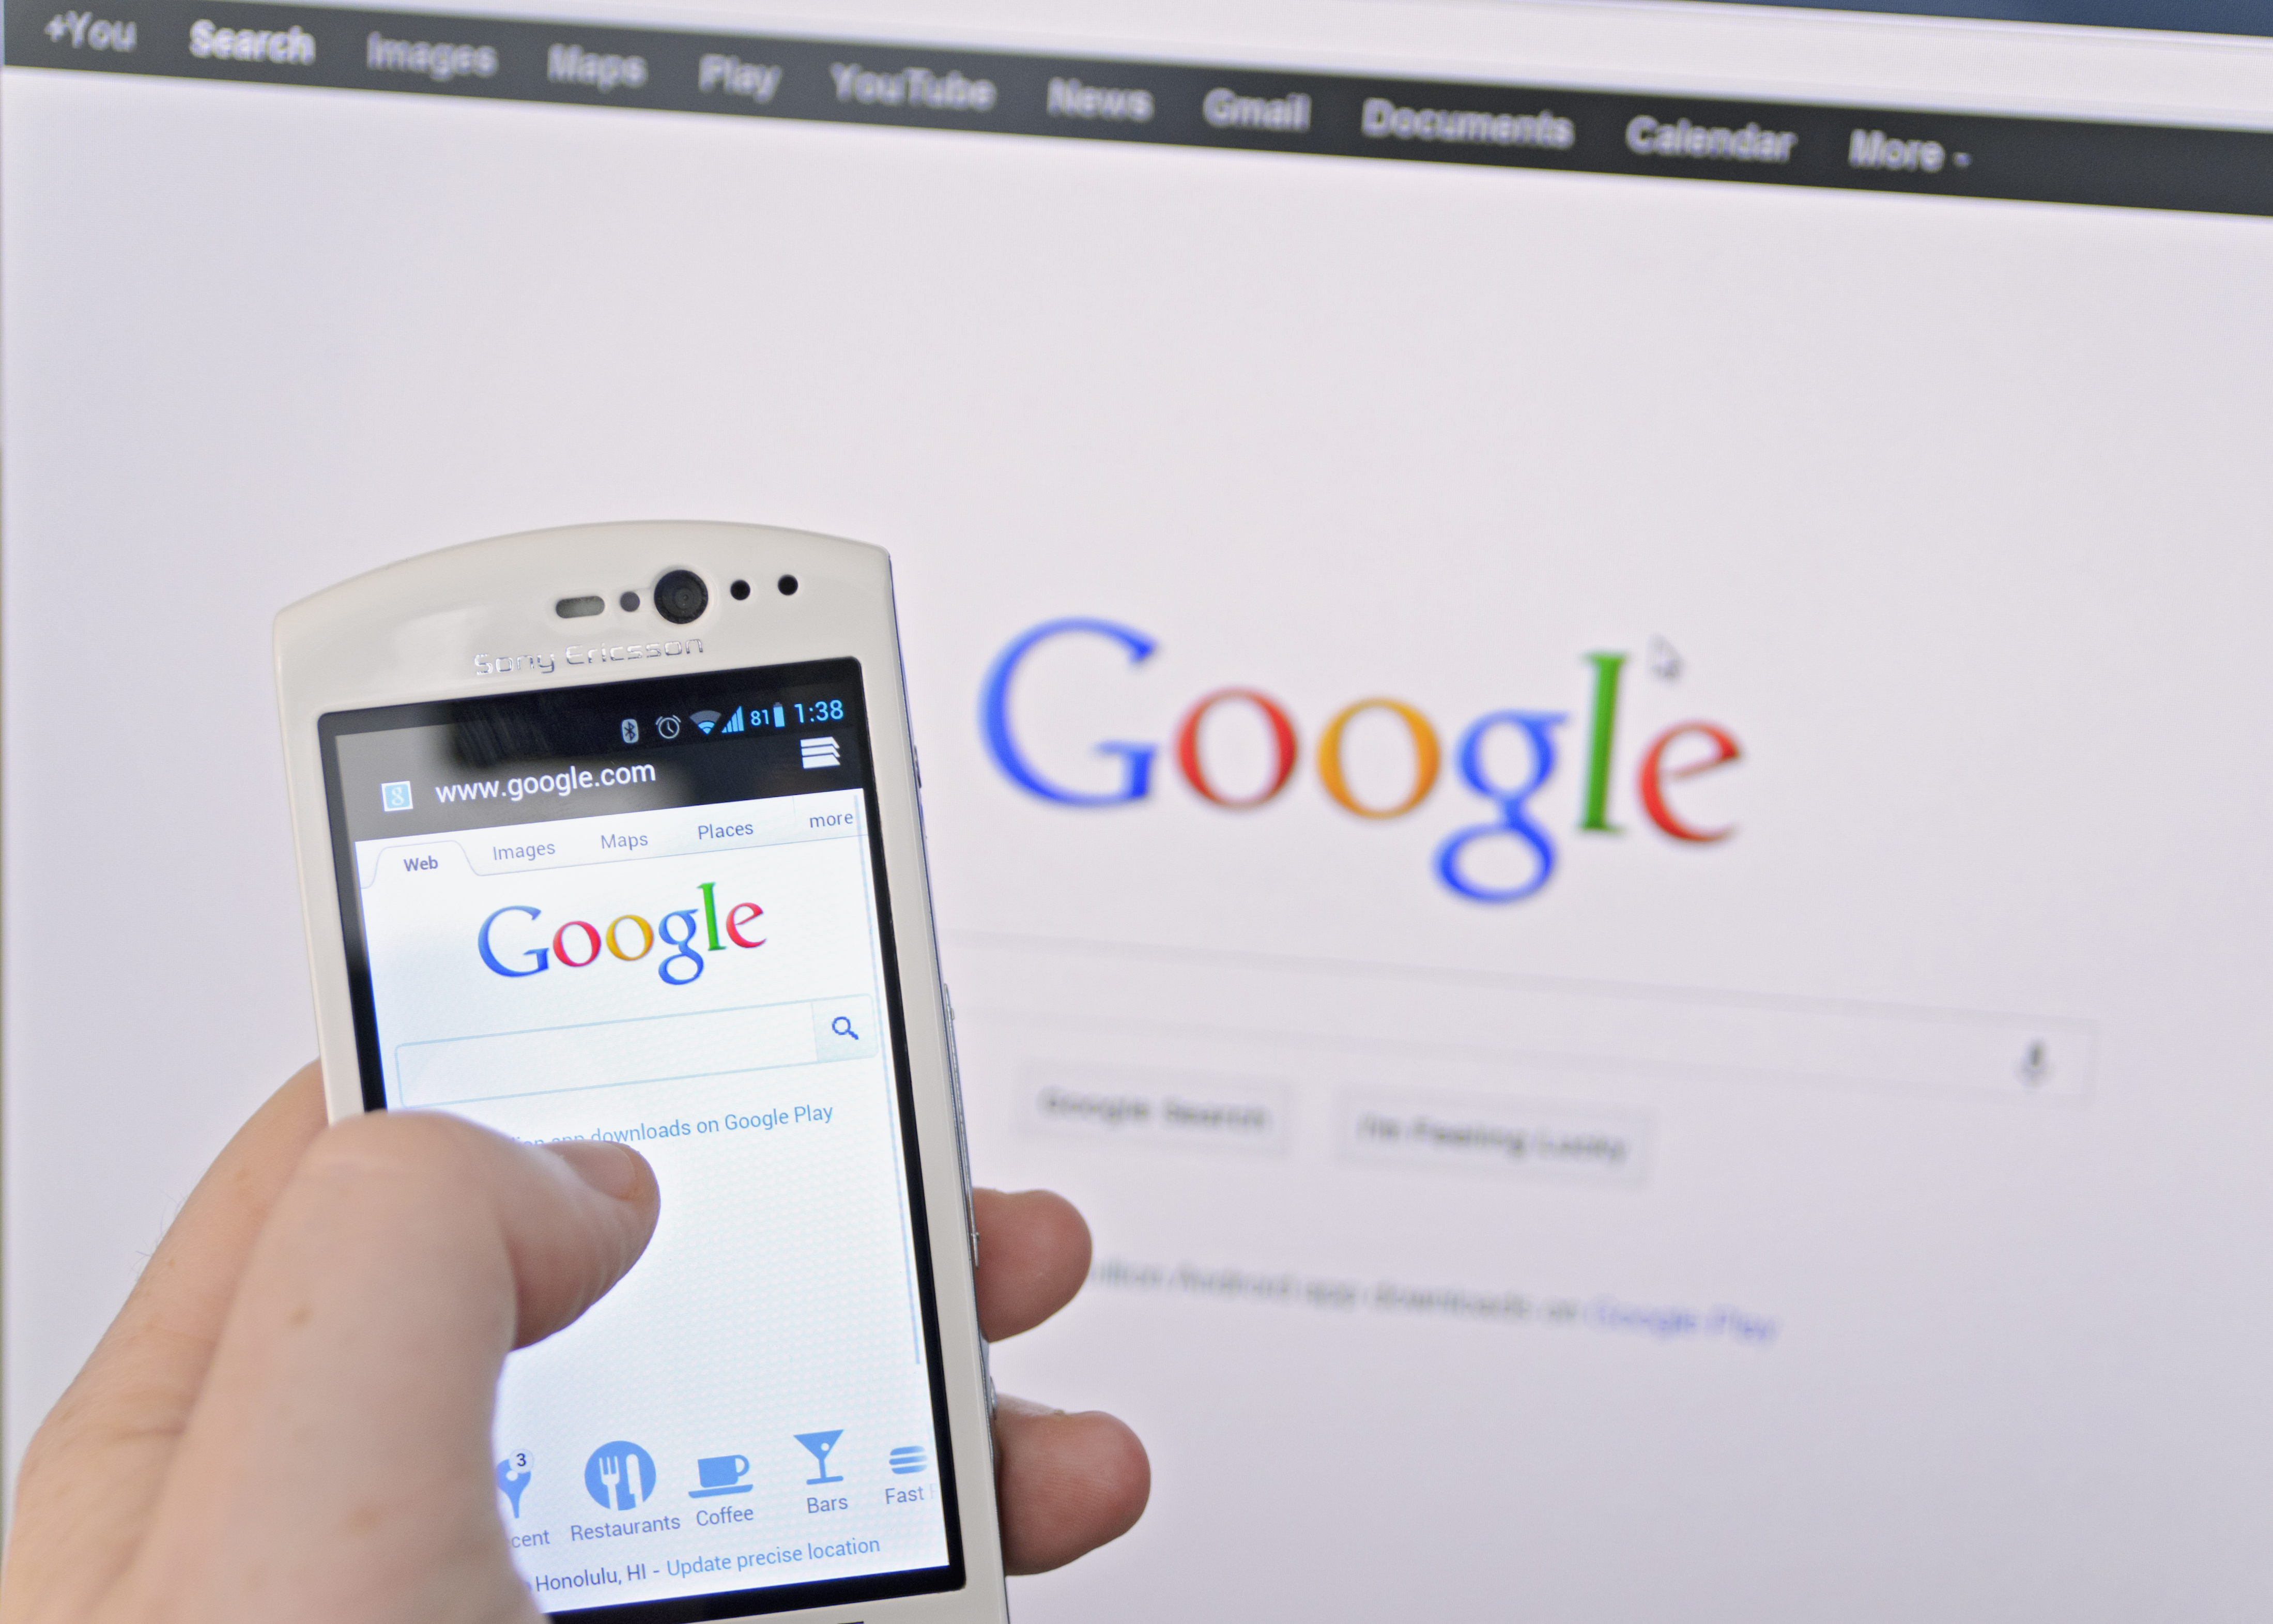 Image of a person on a smartphone conducting a Google search on a phone in front of a computer showing Google on screen.